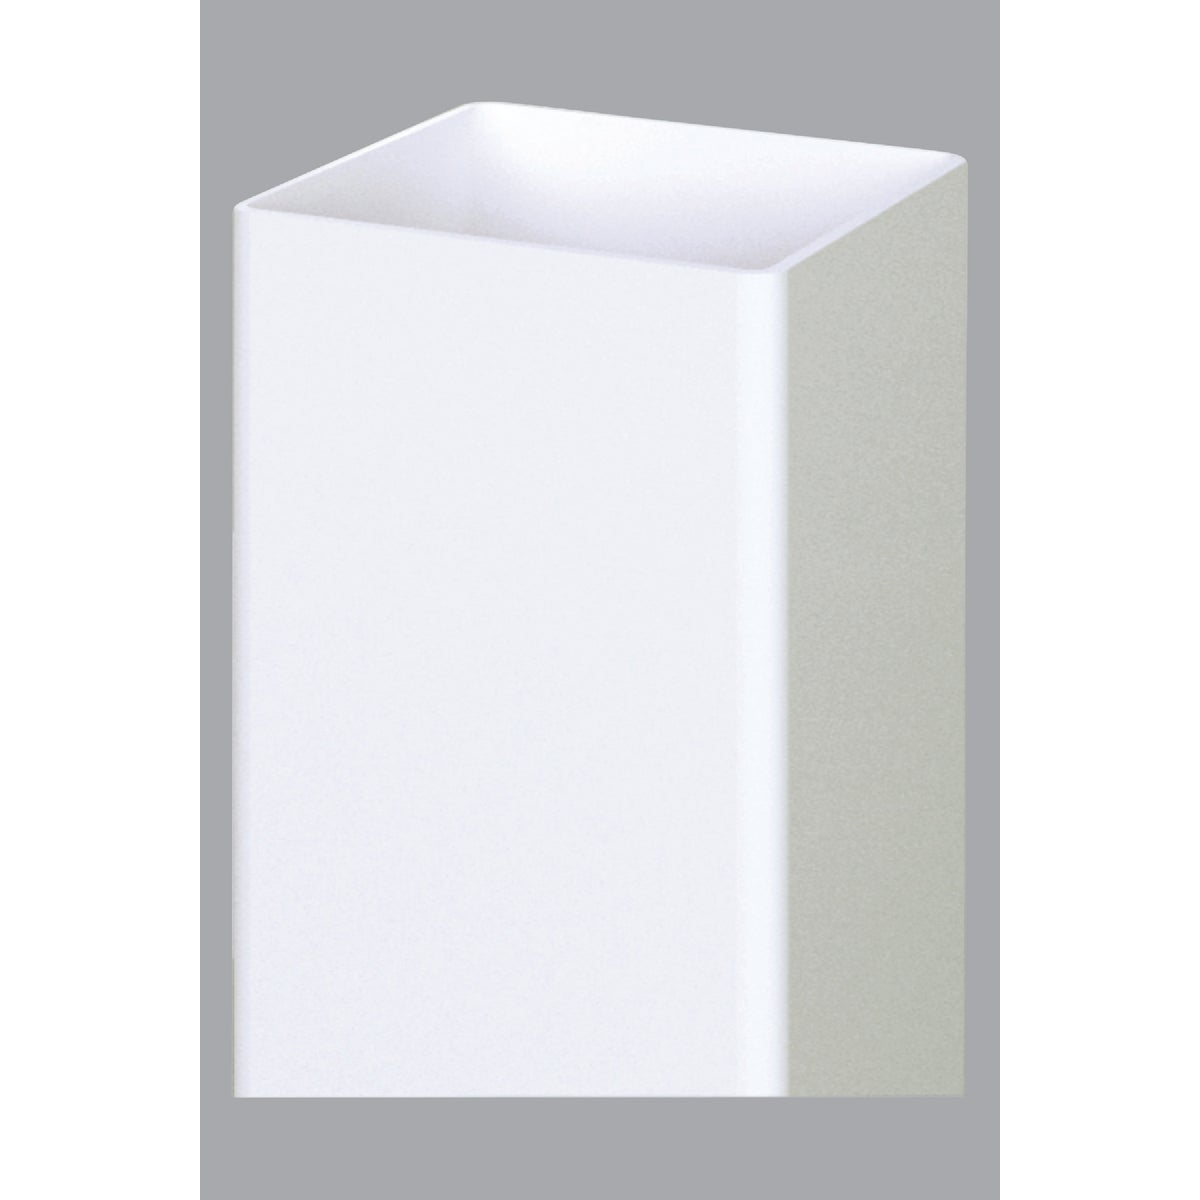 5X5X96 WHT VINYL POST - 127598 by Ufpi Lbr & Treated